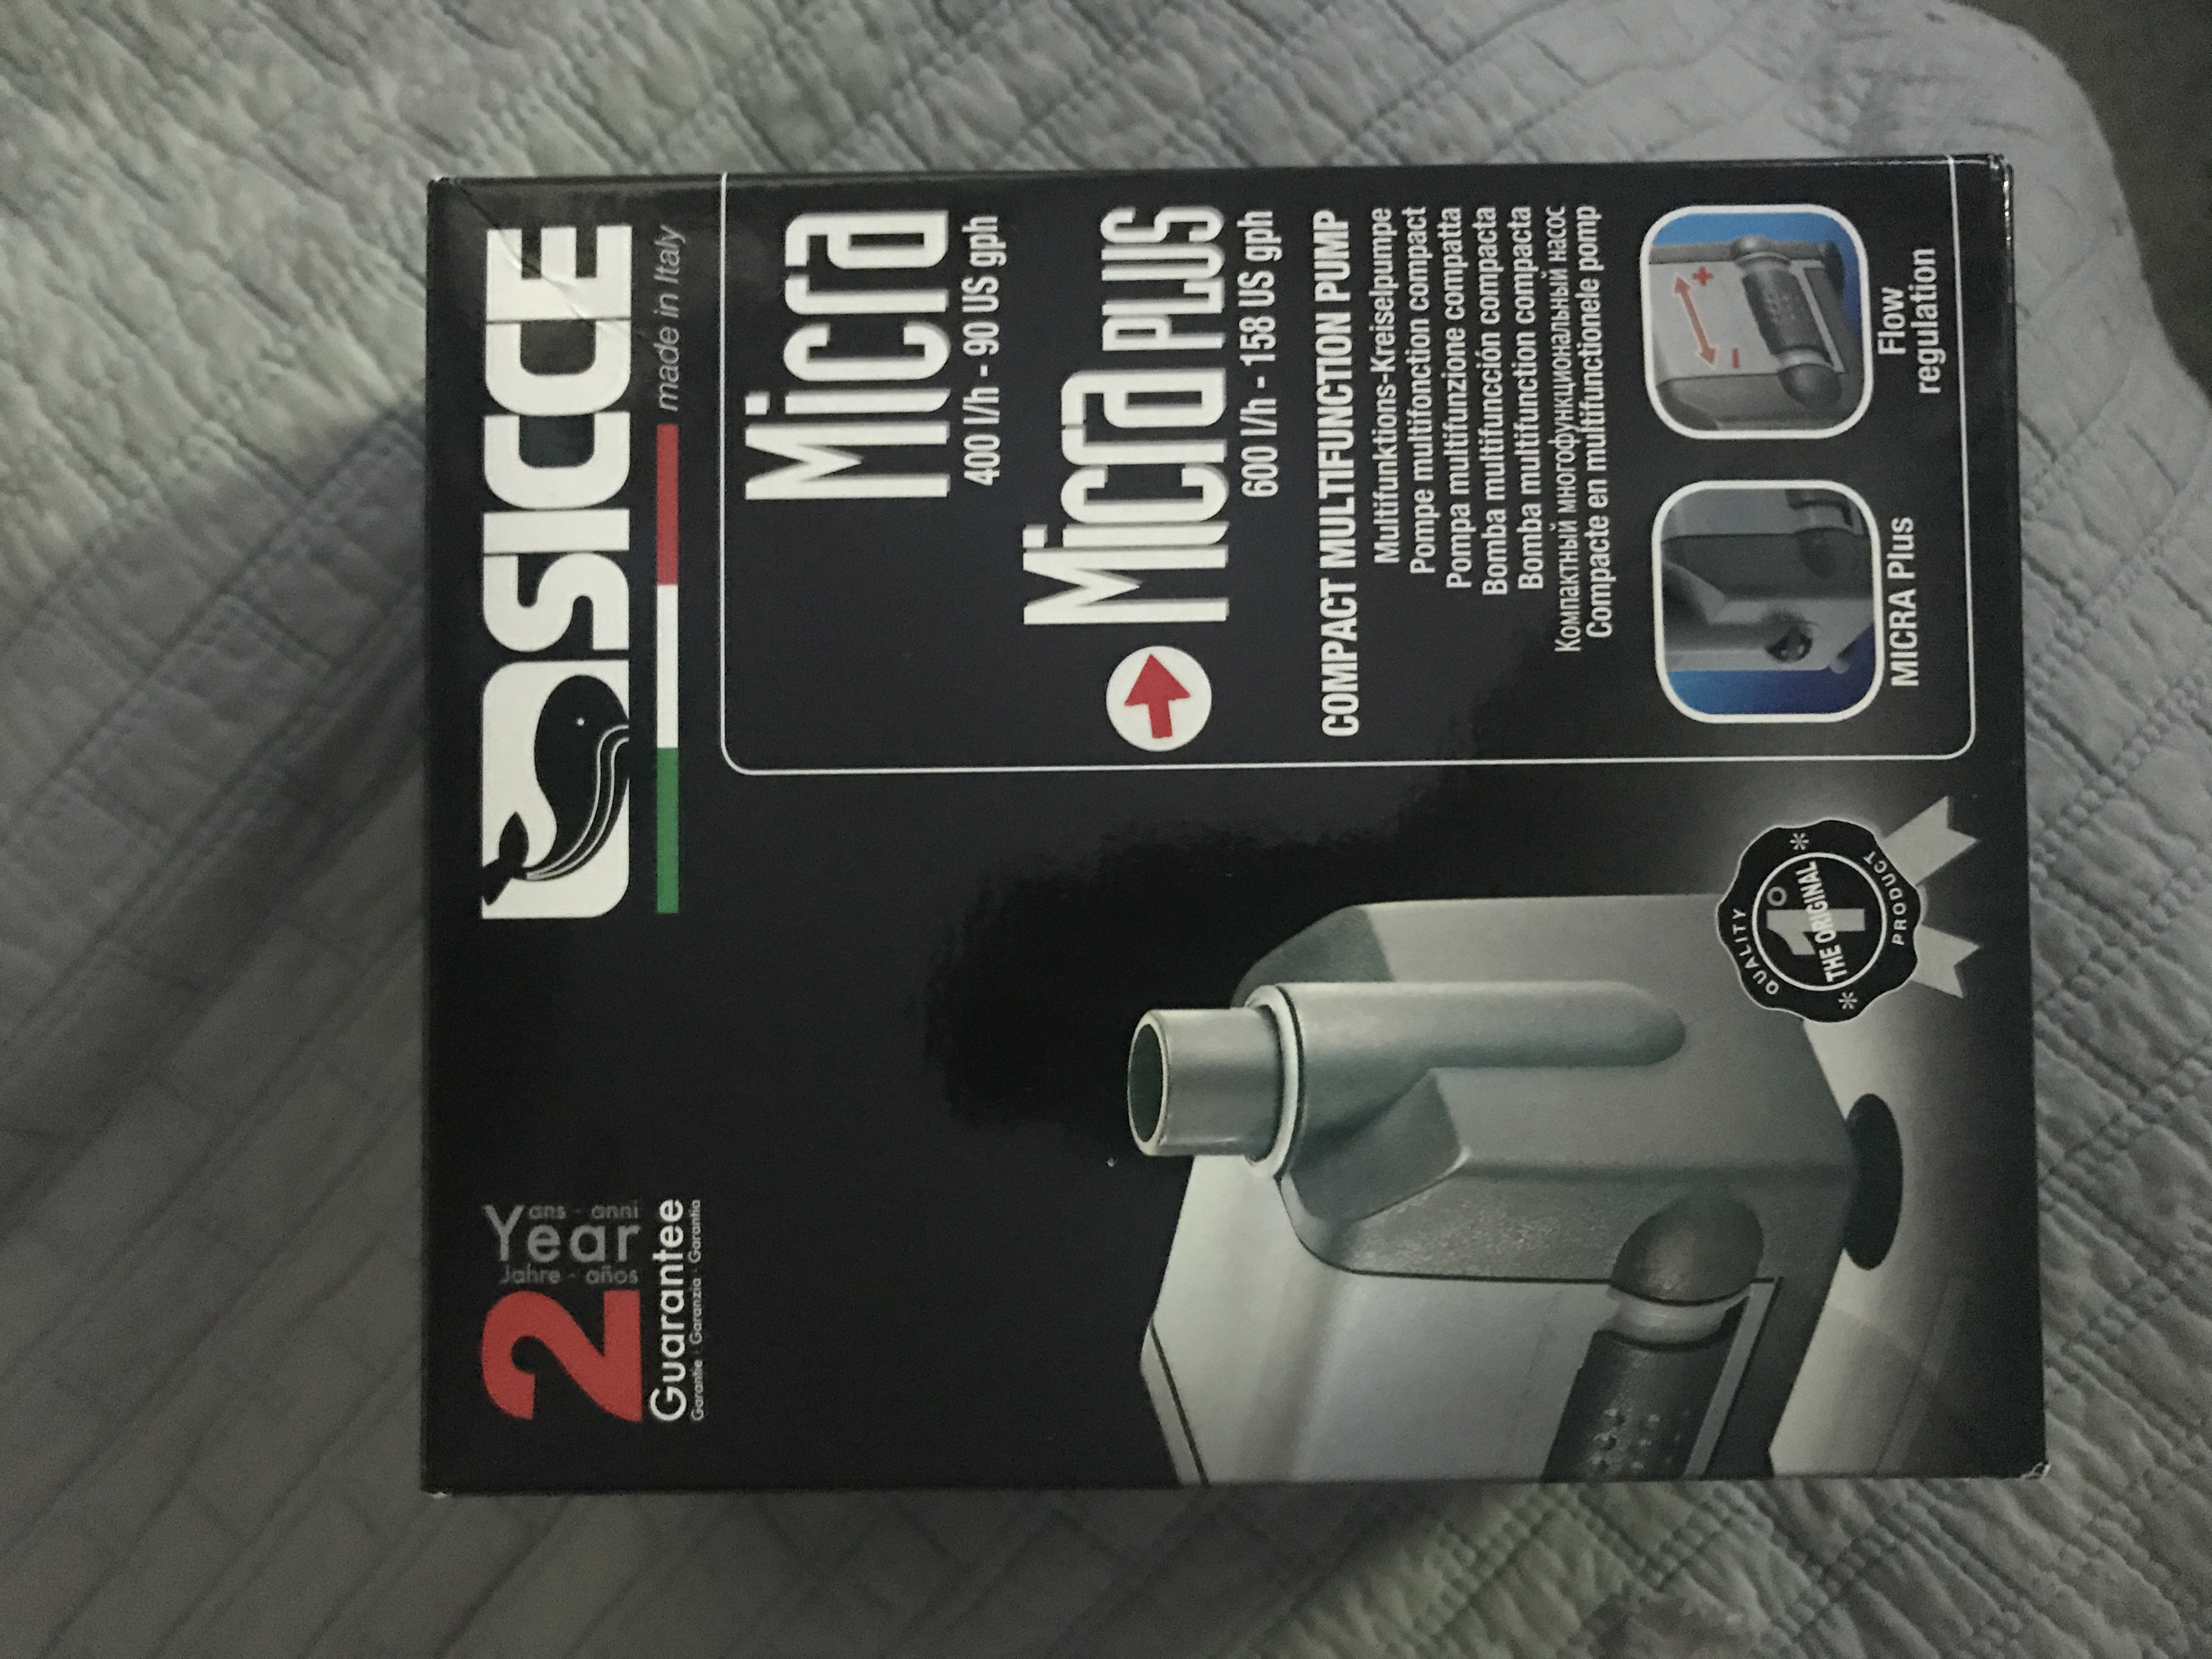 Sicce Syncra 1.0 Pump Pumps (water) Fish & Aquariums 251 Gph Be Novel In Design